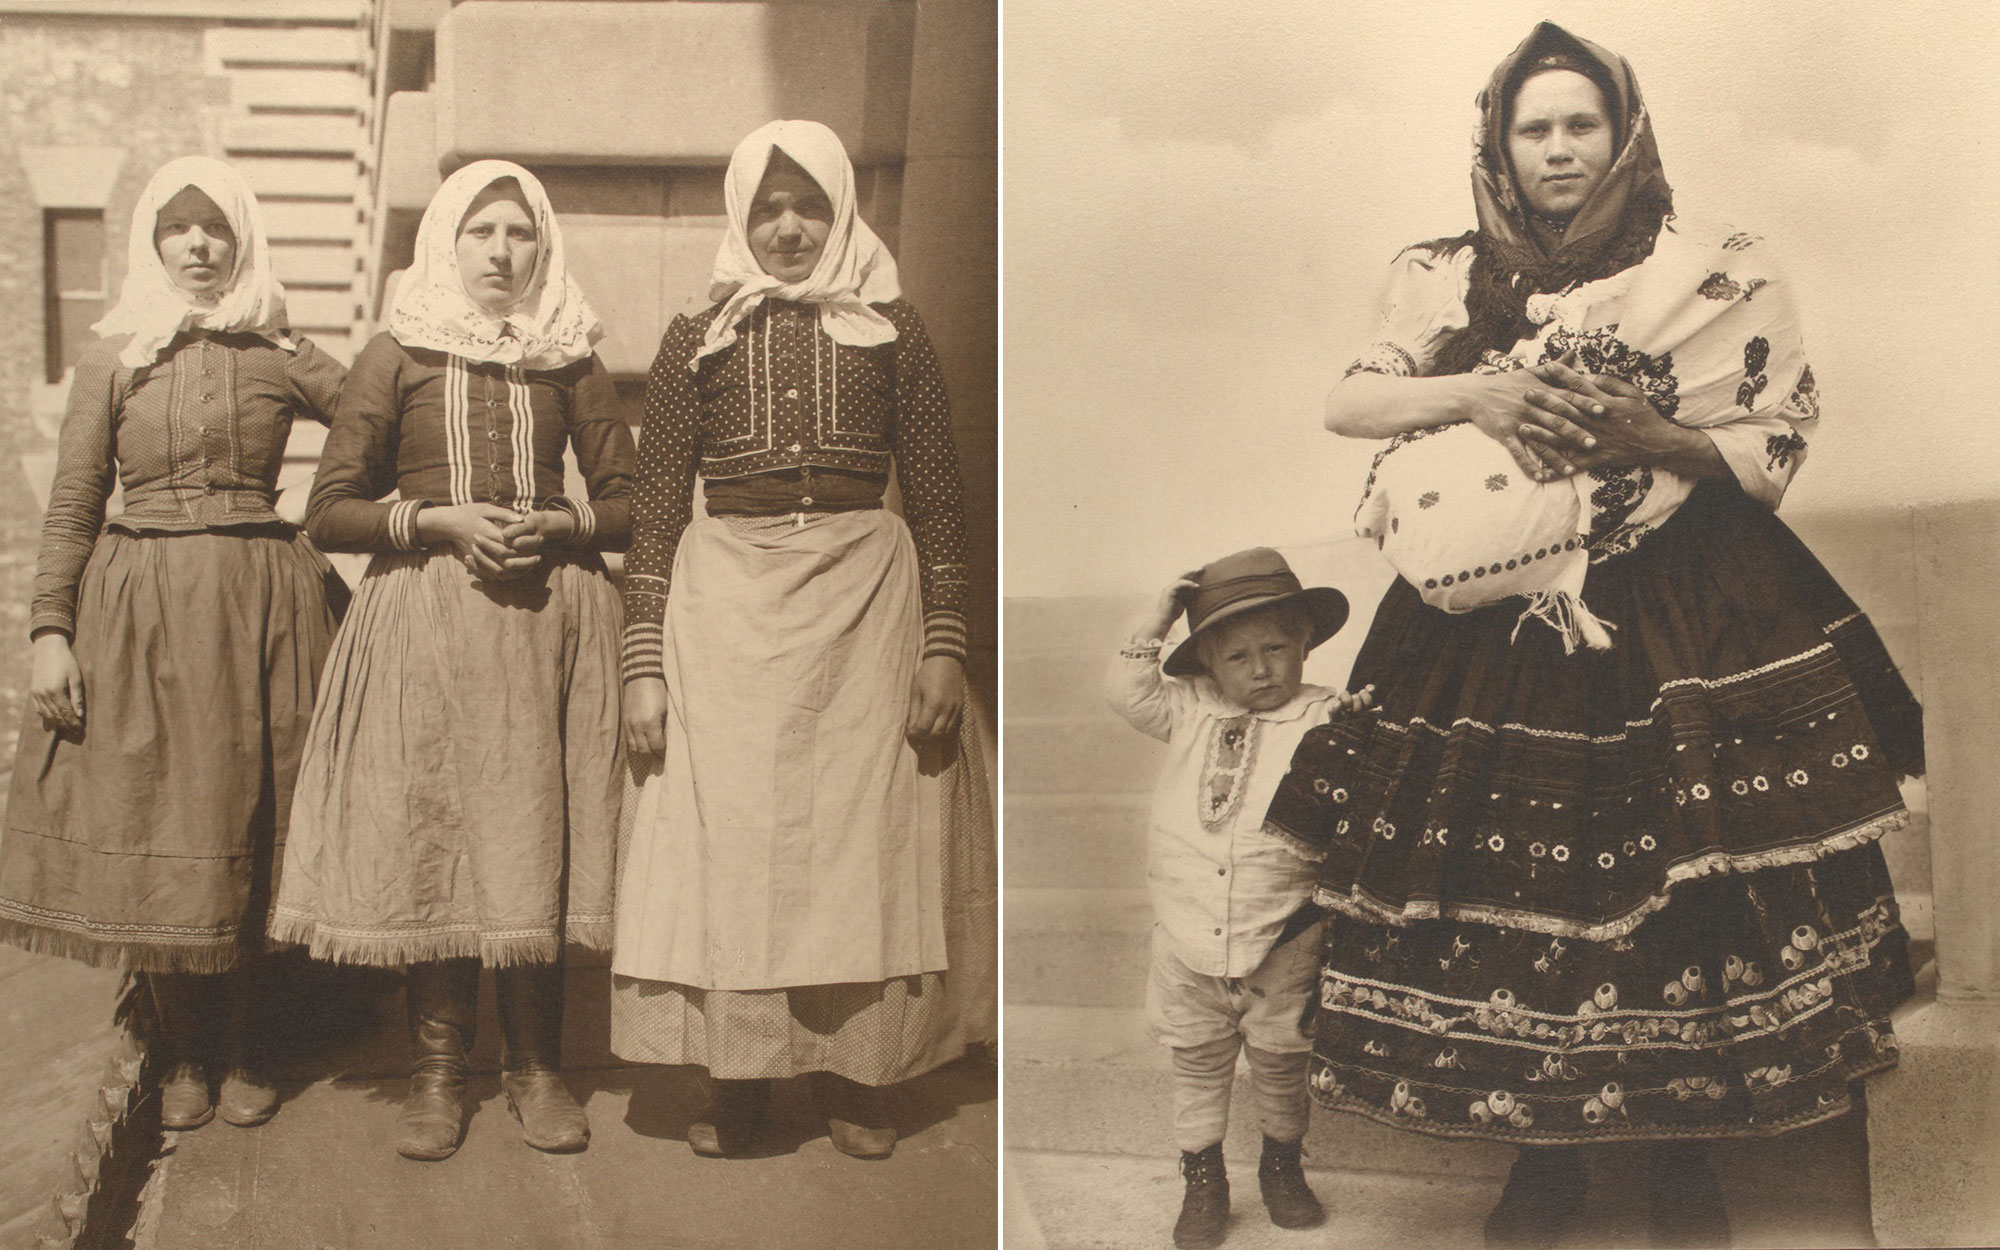 Ellis Island Photos